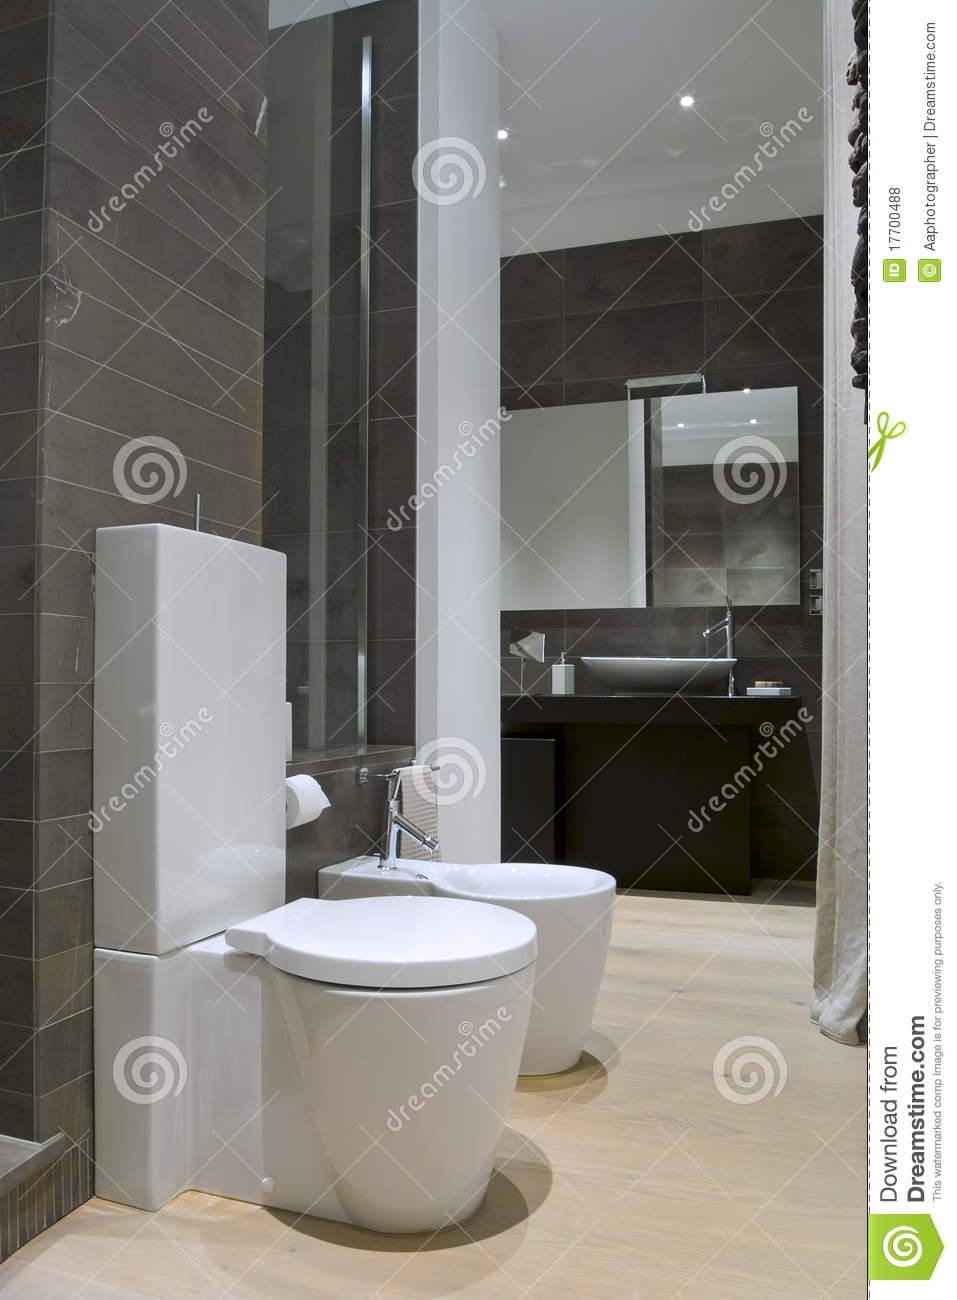 Modern bathroom with white sanitary ware stock photo for Bathroom ware